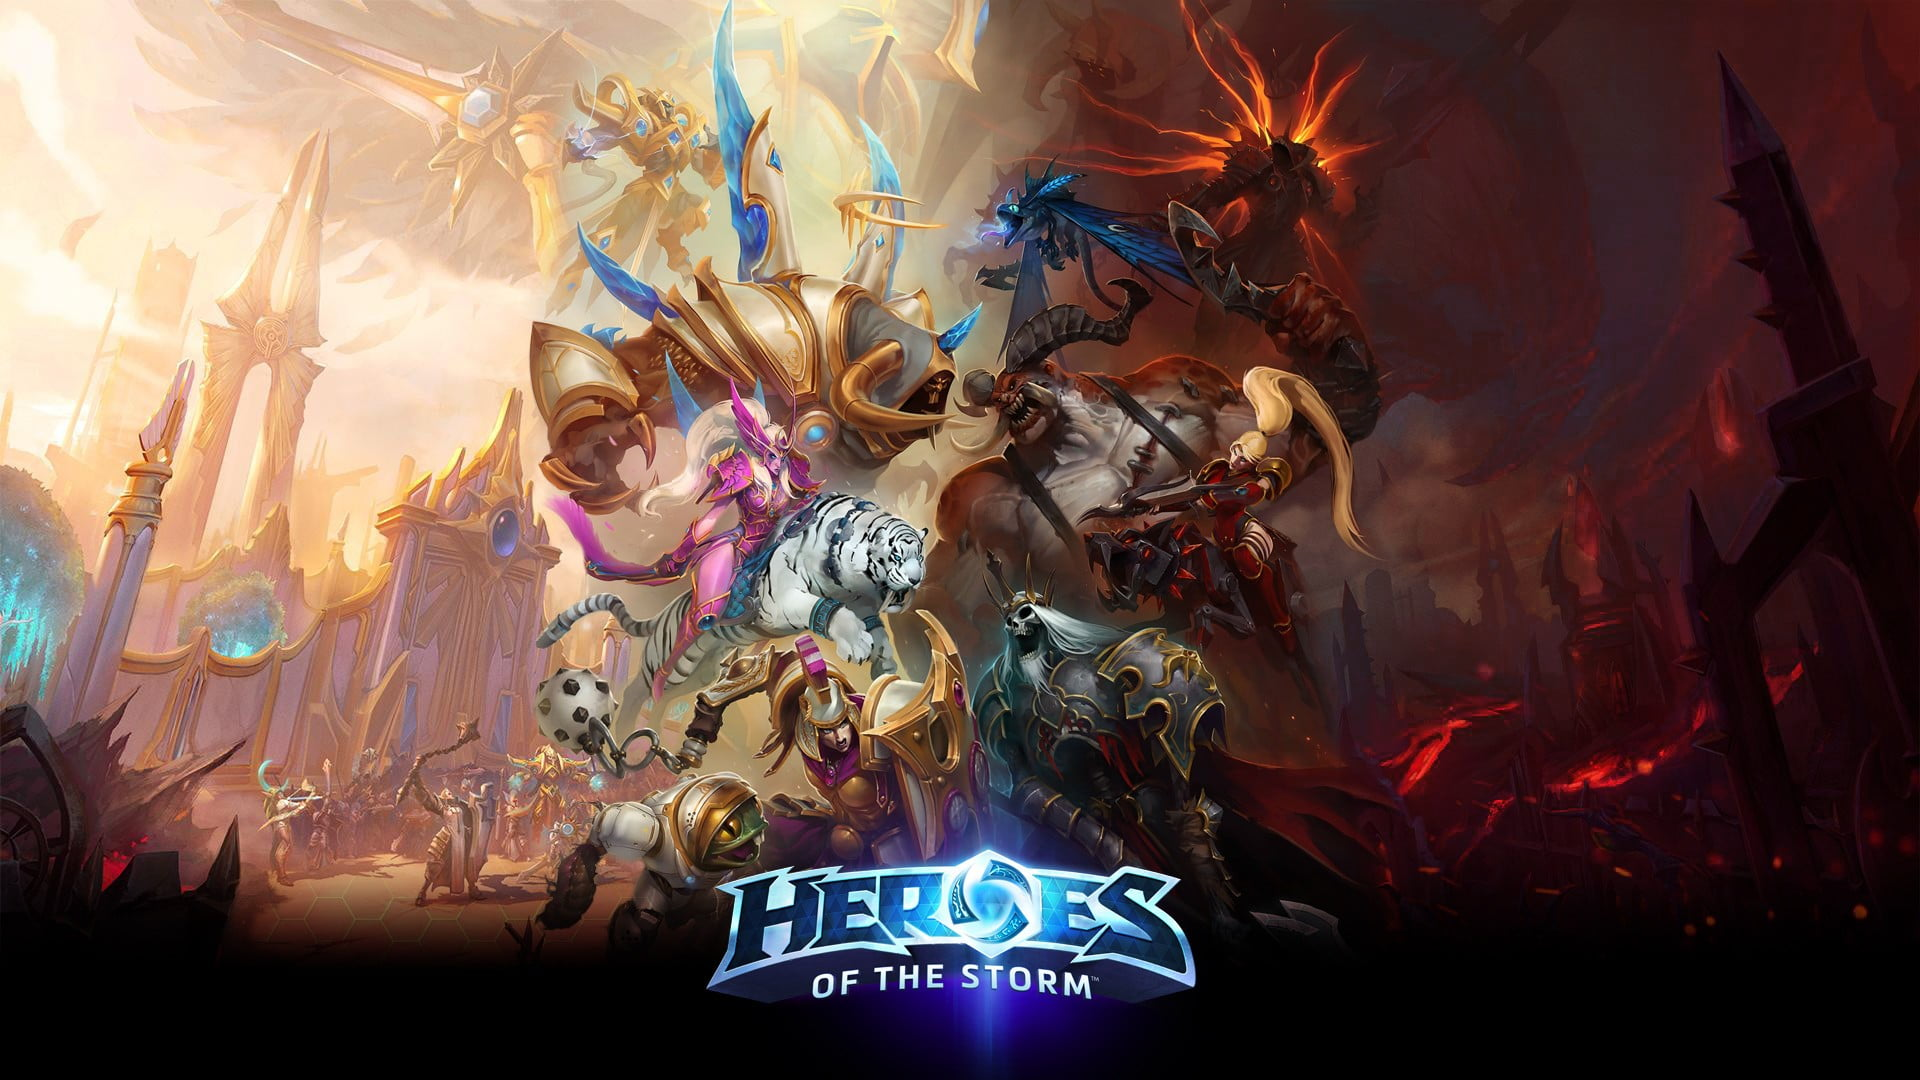 Heroes Of The Storm , HD Wallpaper & Backgrounds